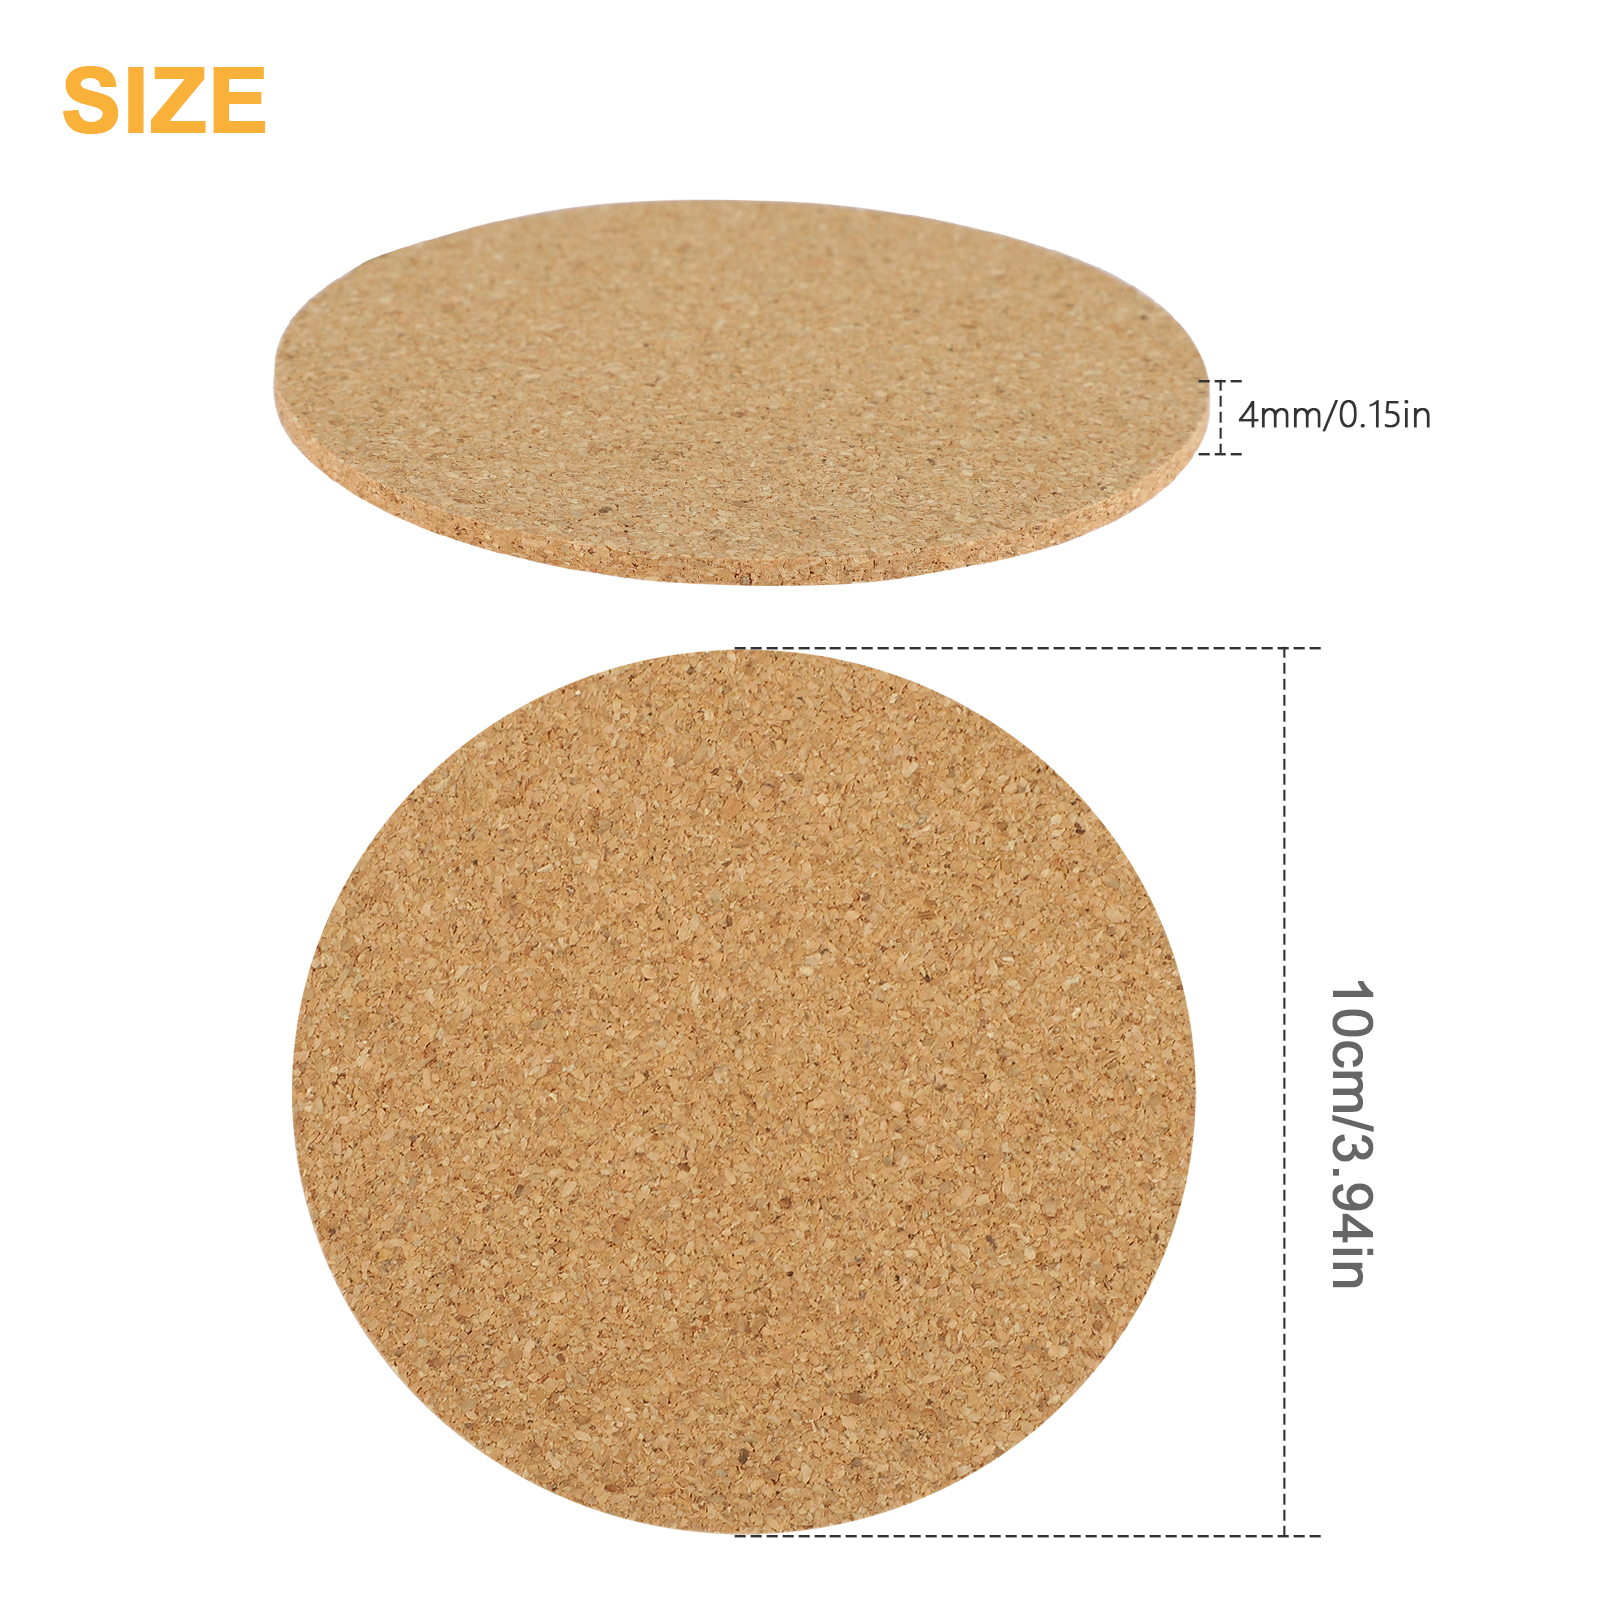 Natural Cork Coasters for Drinks Absorbent Heat/&Water Resistant Durable Saucers